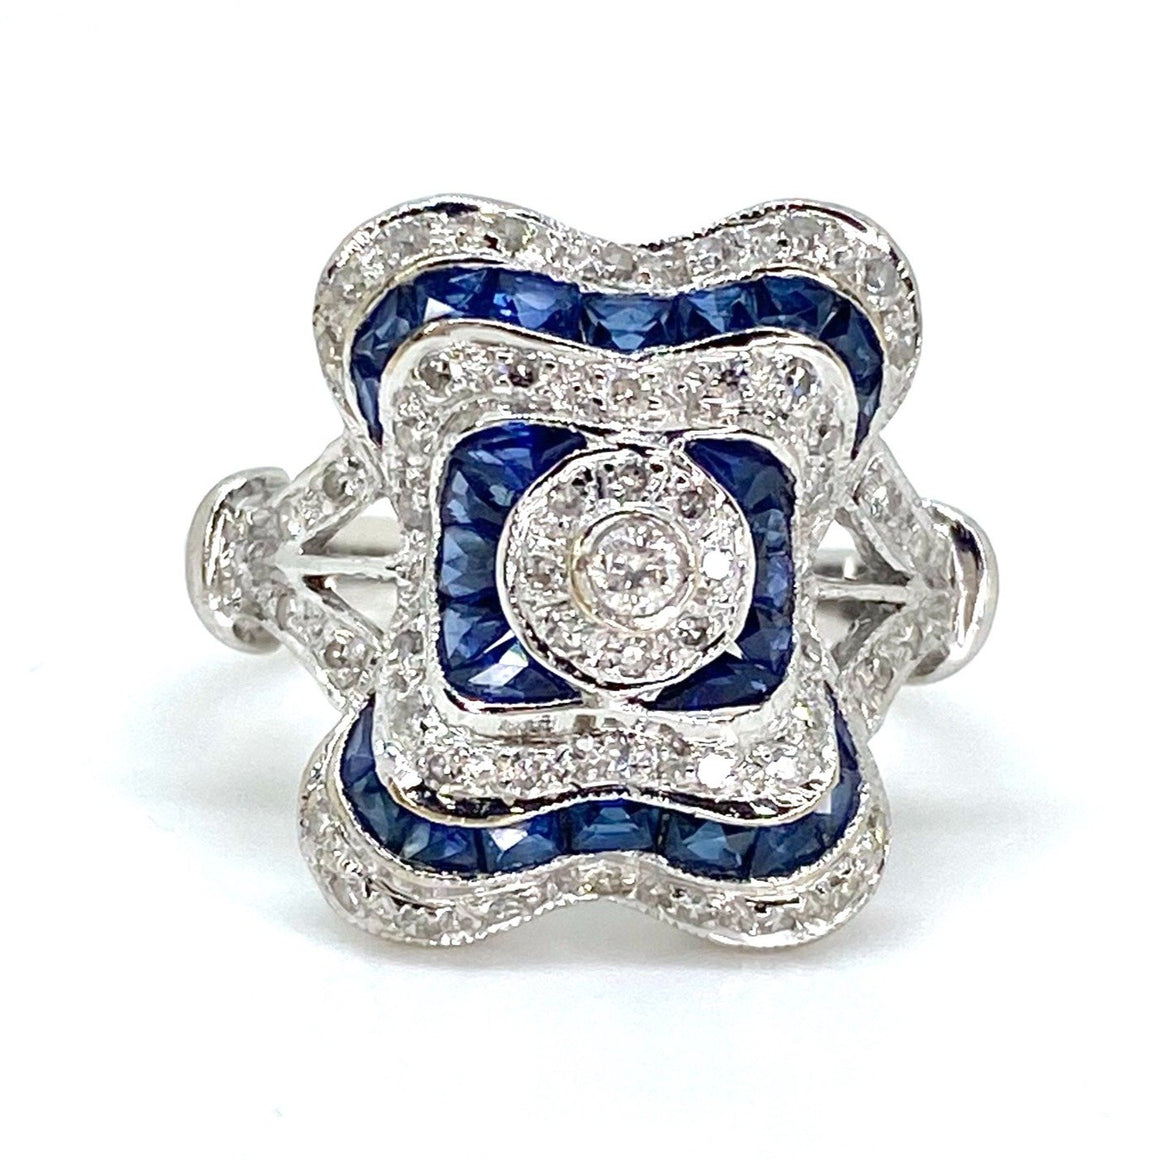 Vintage Sapphire and Diamond 14K White Gold Ring